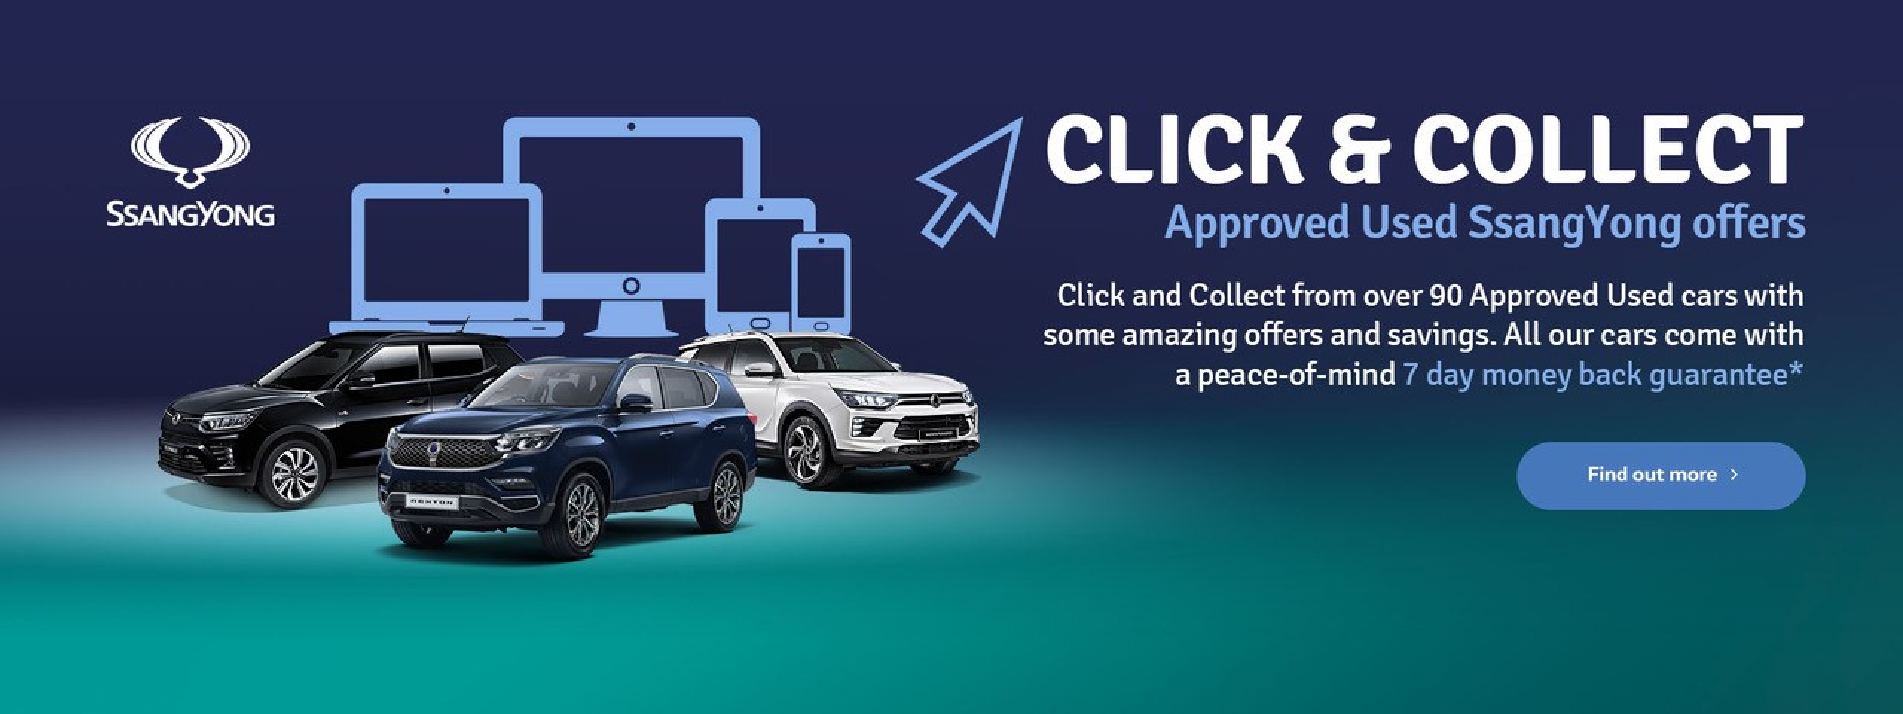 The Peter Cooper Motor Group 7 day Money Back Guarantee